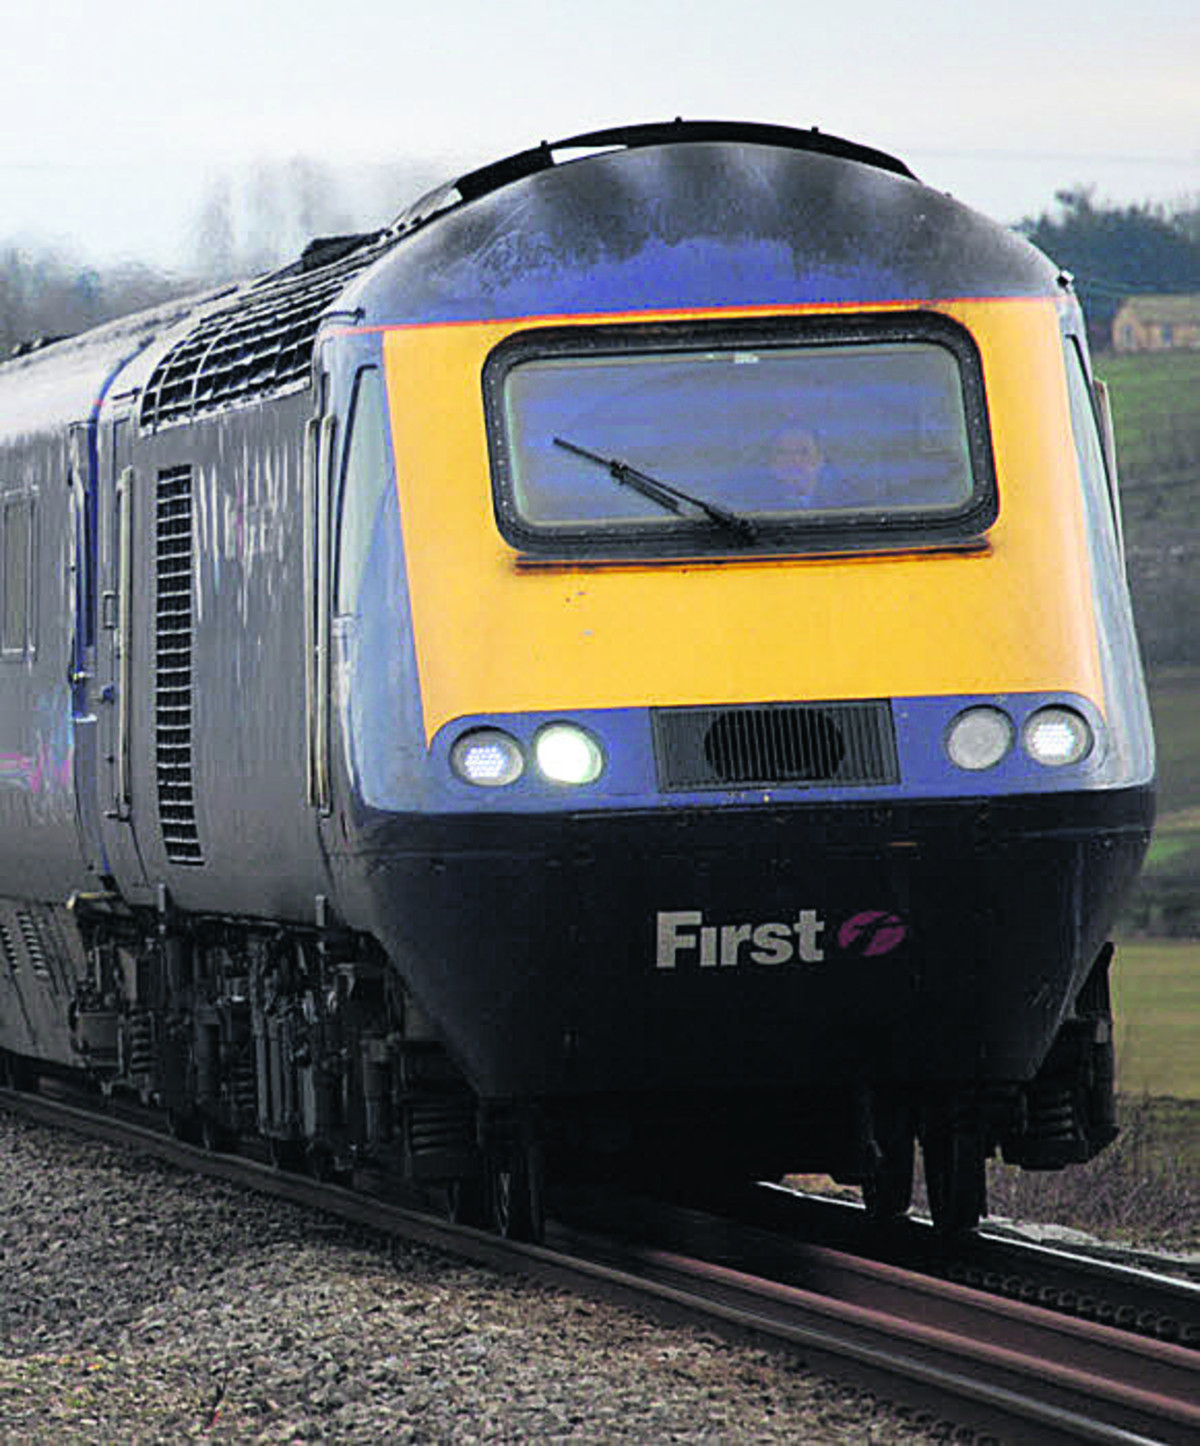 Trains between Oxford and Worcester delayed this morning